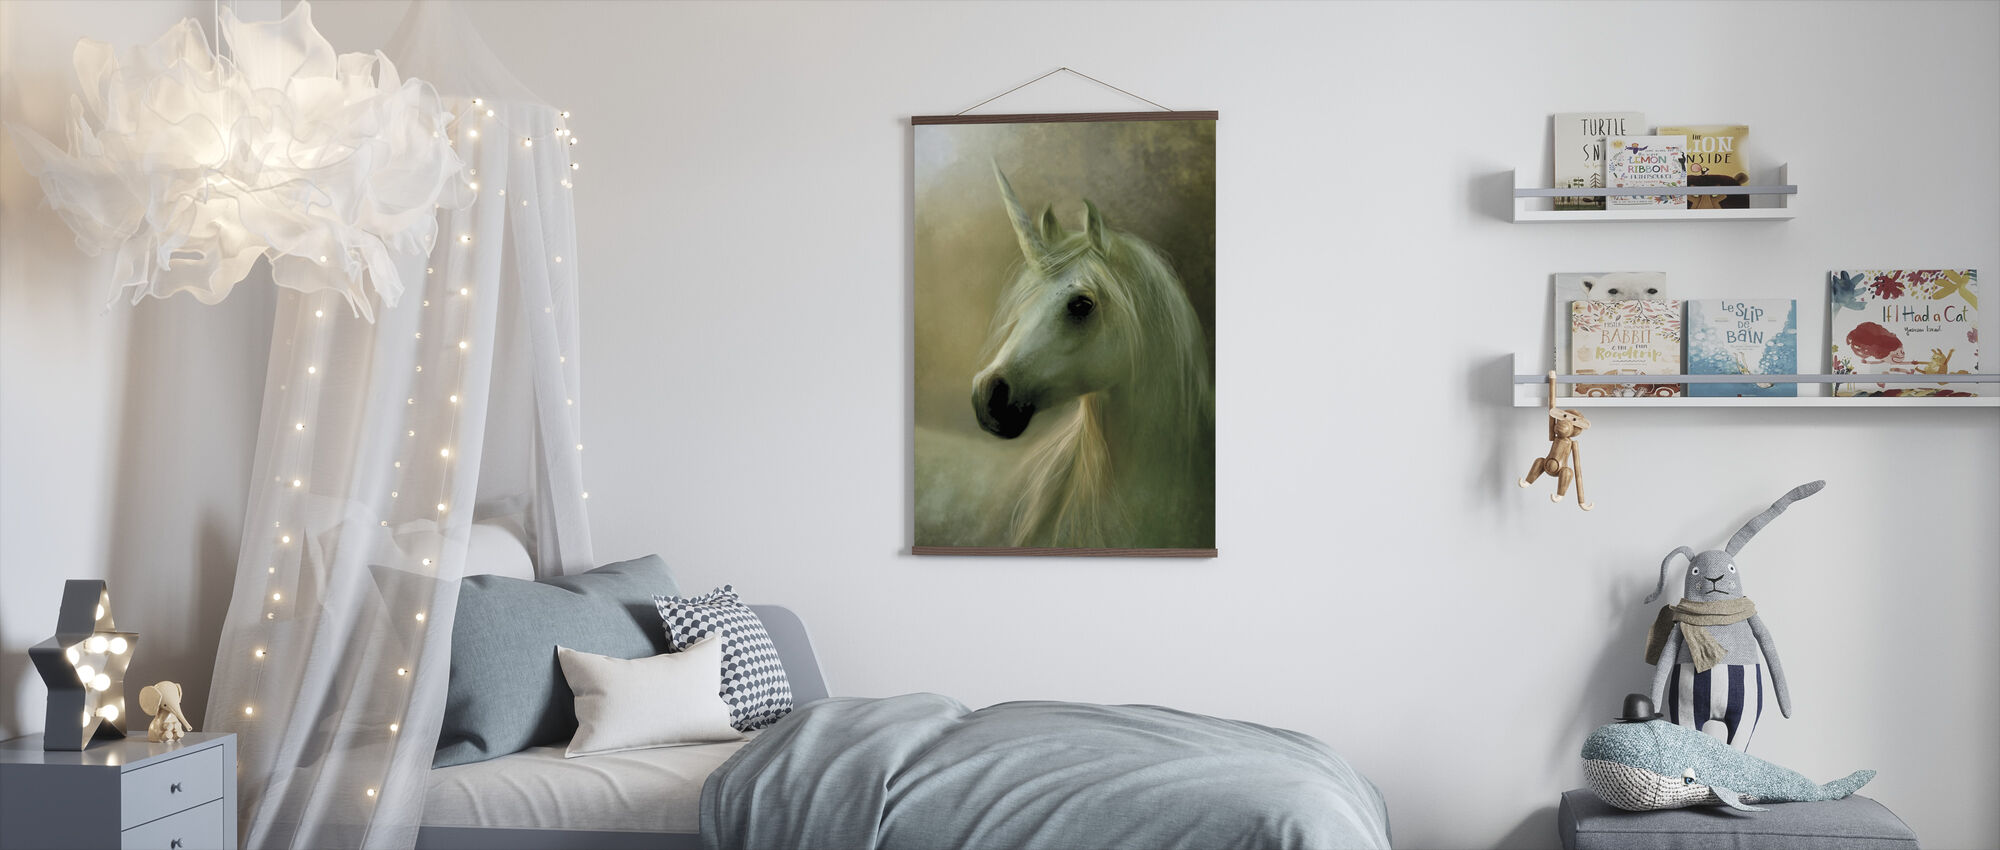 Elegance - Poster - Kids Room